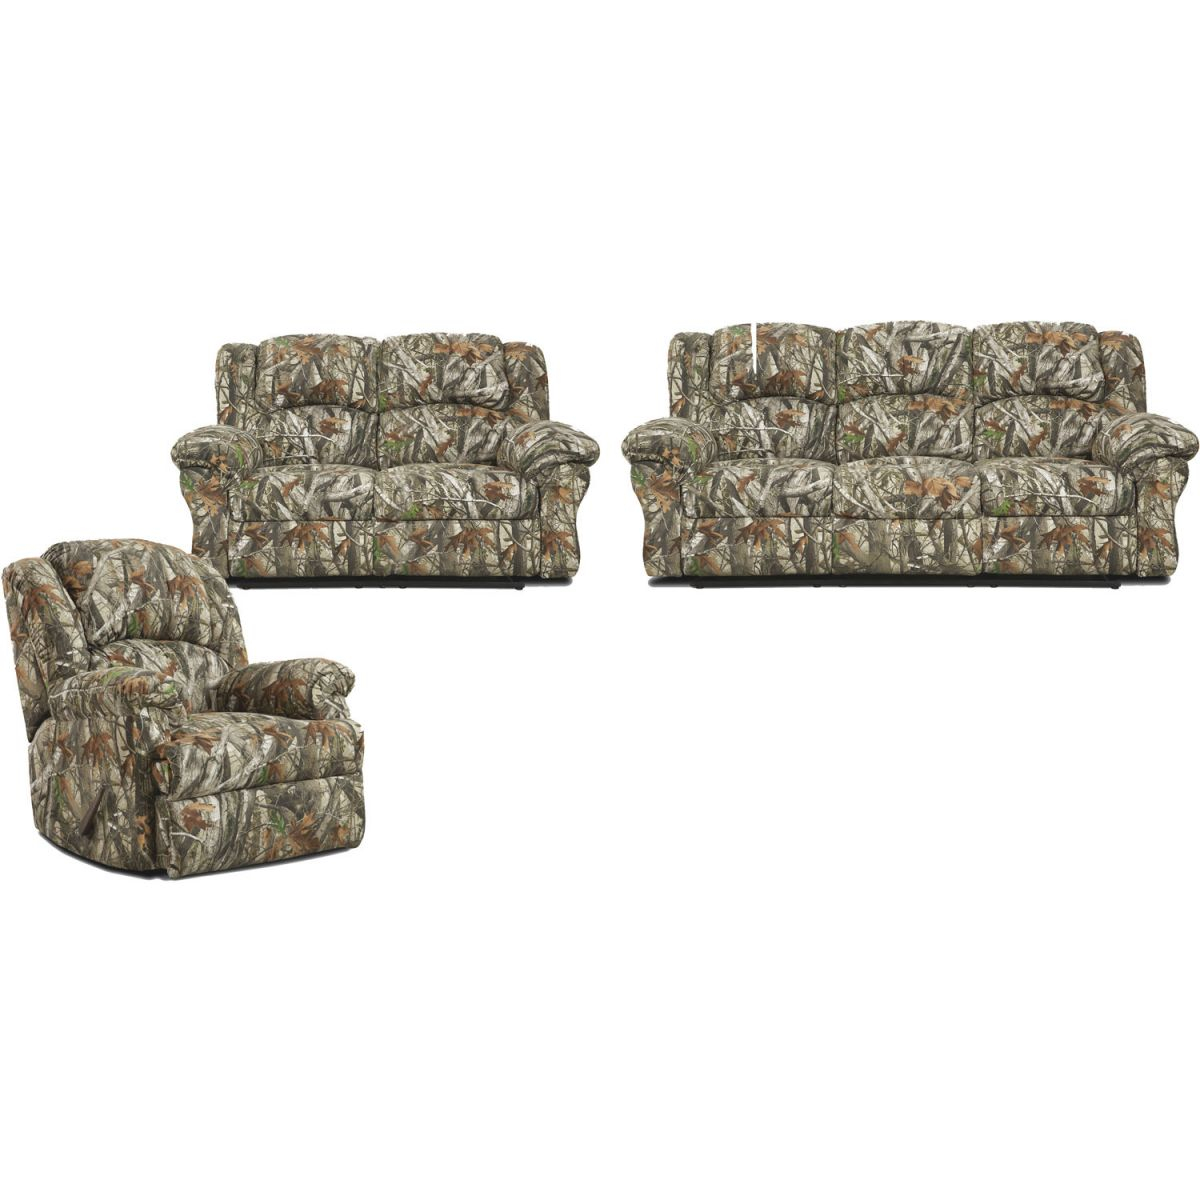 Cambridge Camo 3 Piece Living Set: Sofa, Loveseat, Recliner within Inspirational Camo Living Room Furniture